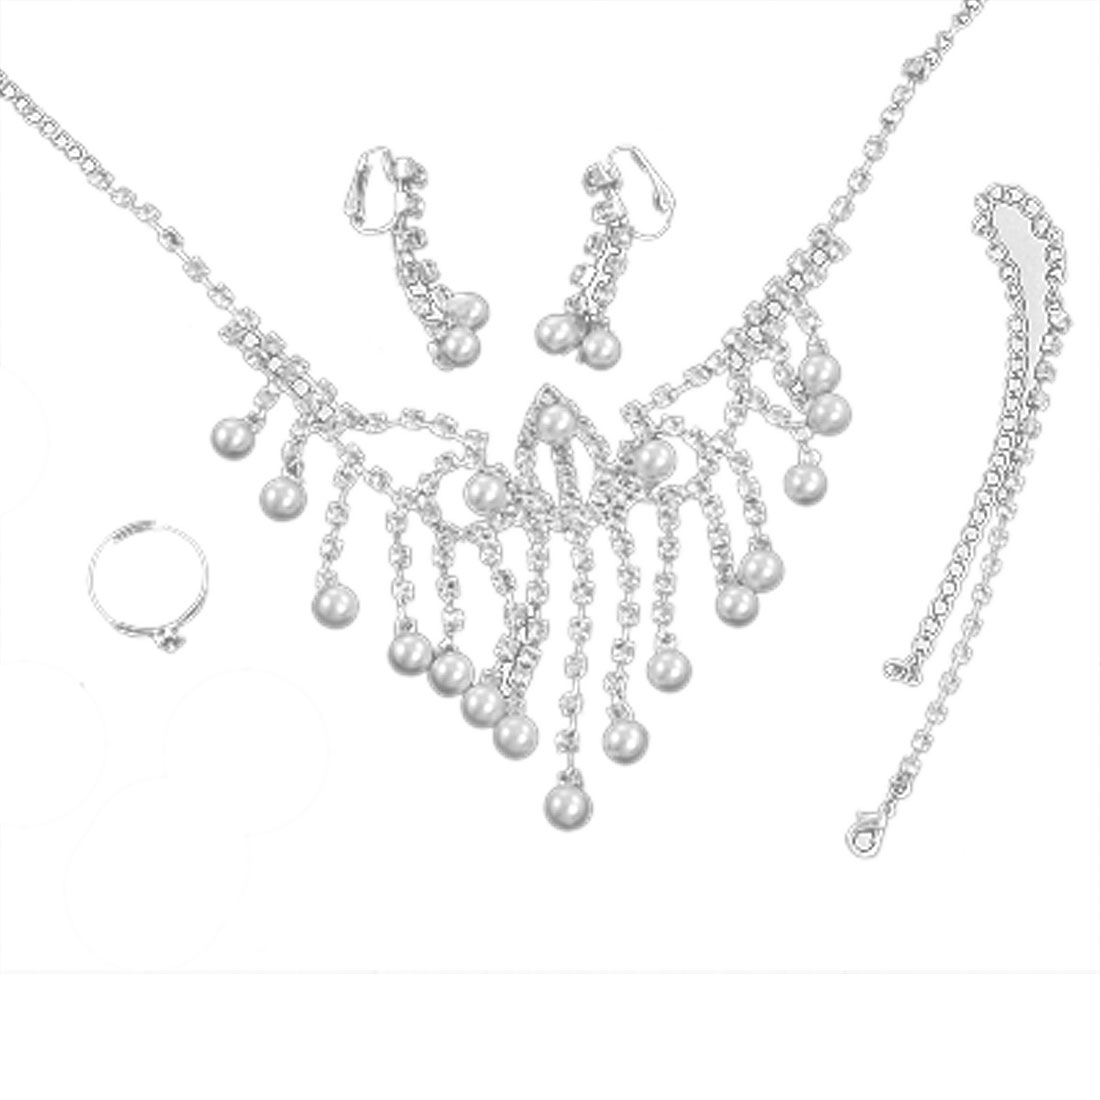 Rhinestone Inlaid Faux Pearl Silver Tone Necklace Jewelry Set